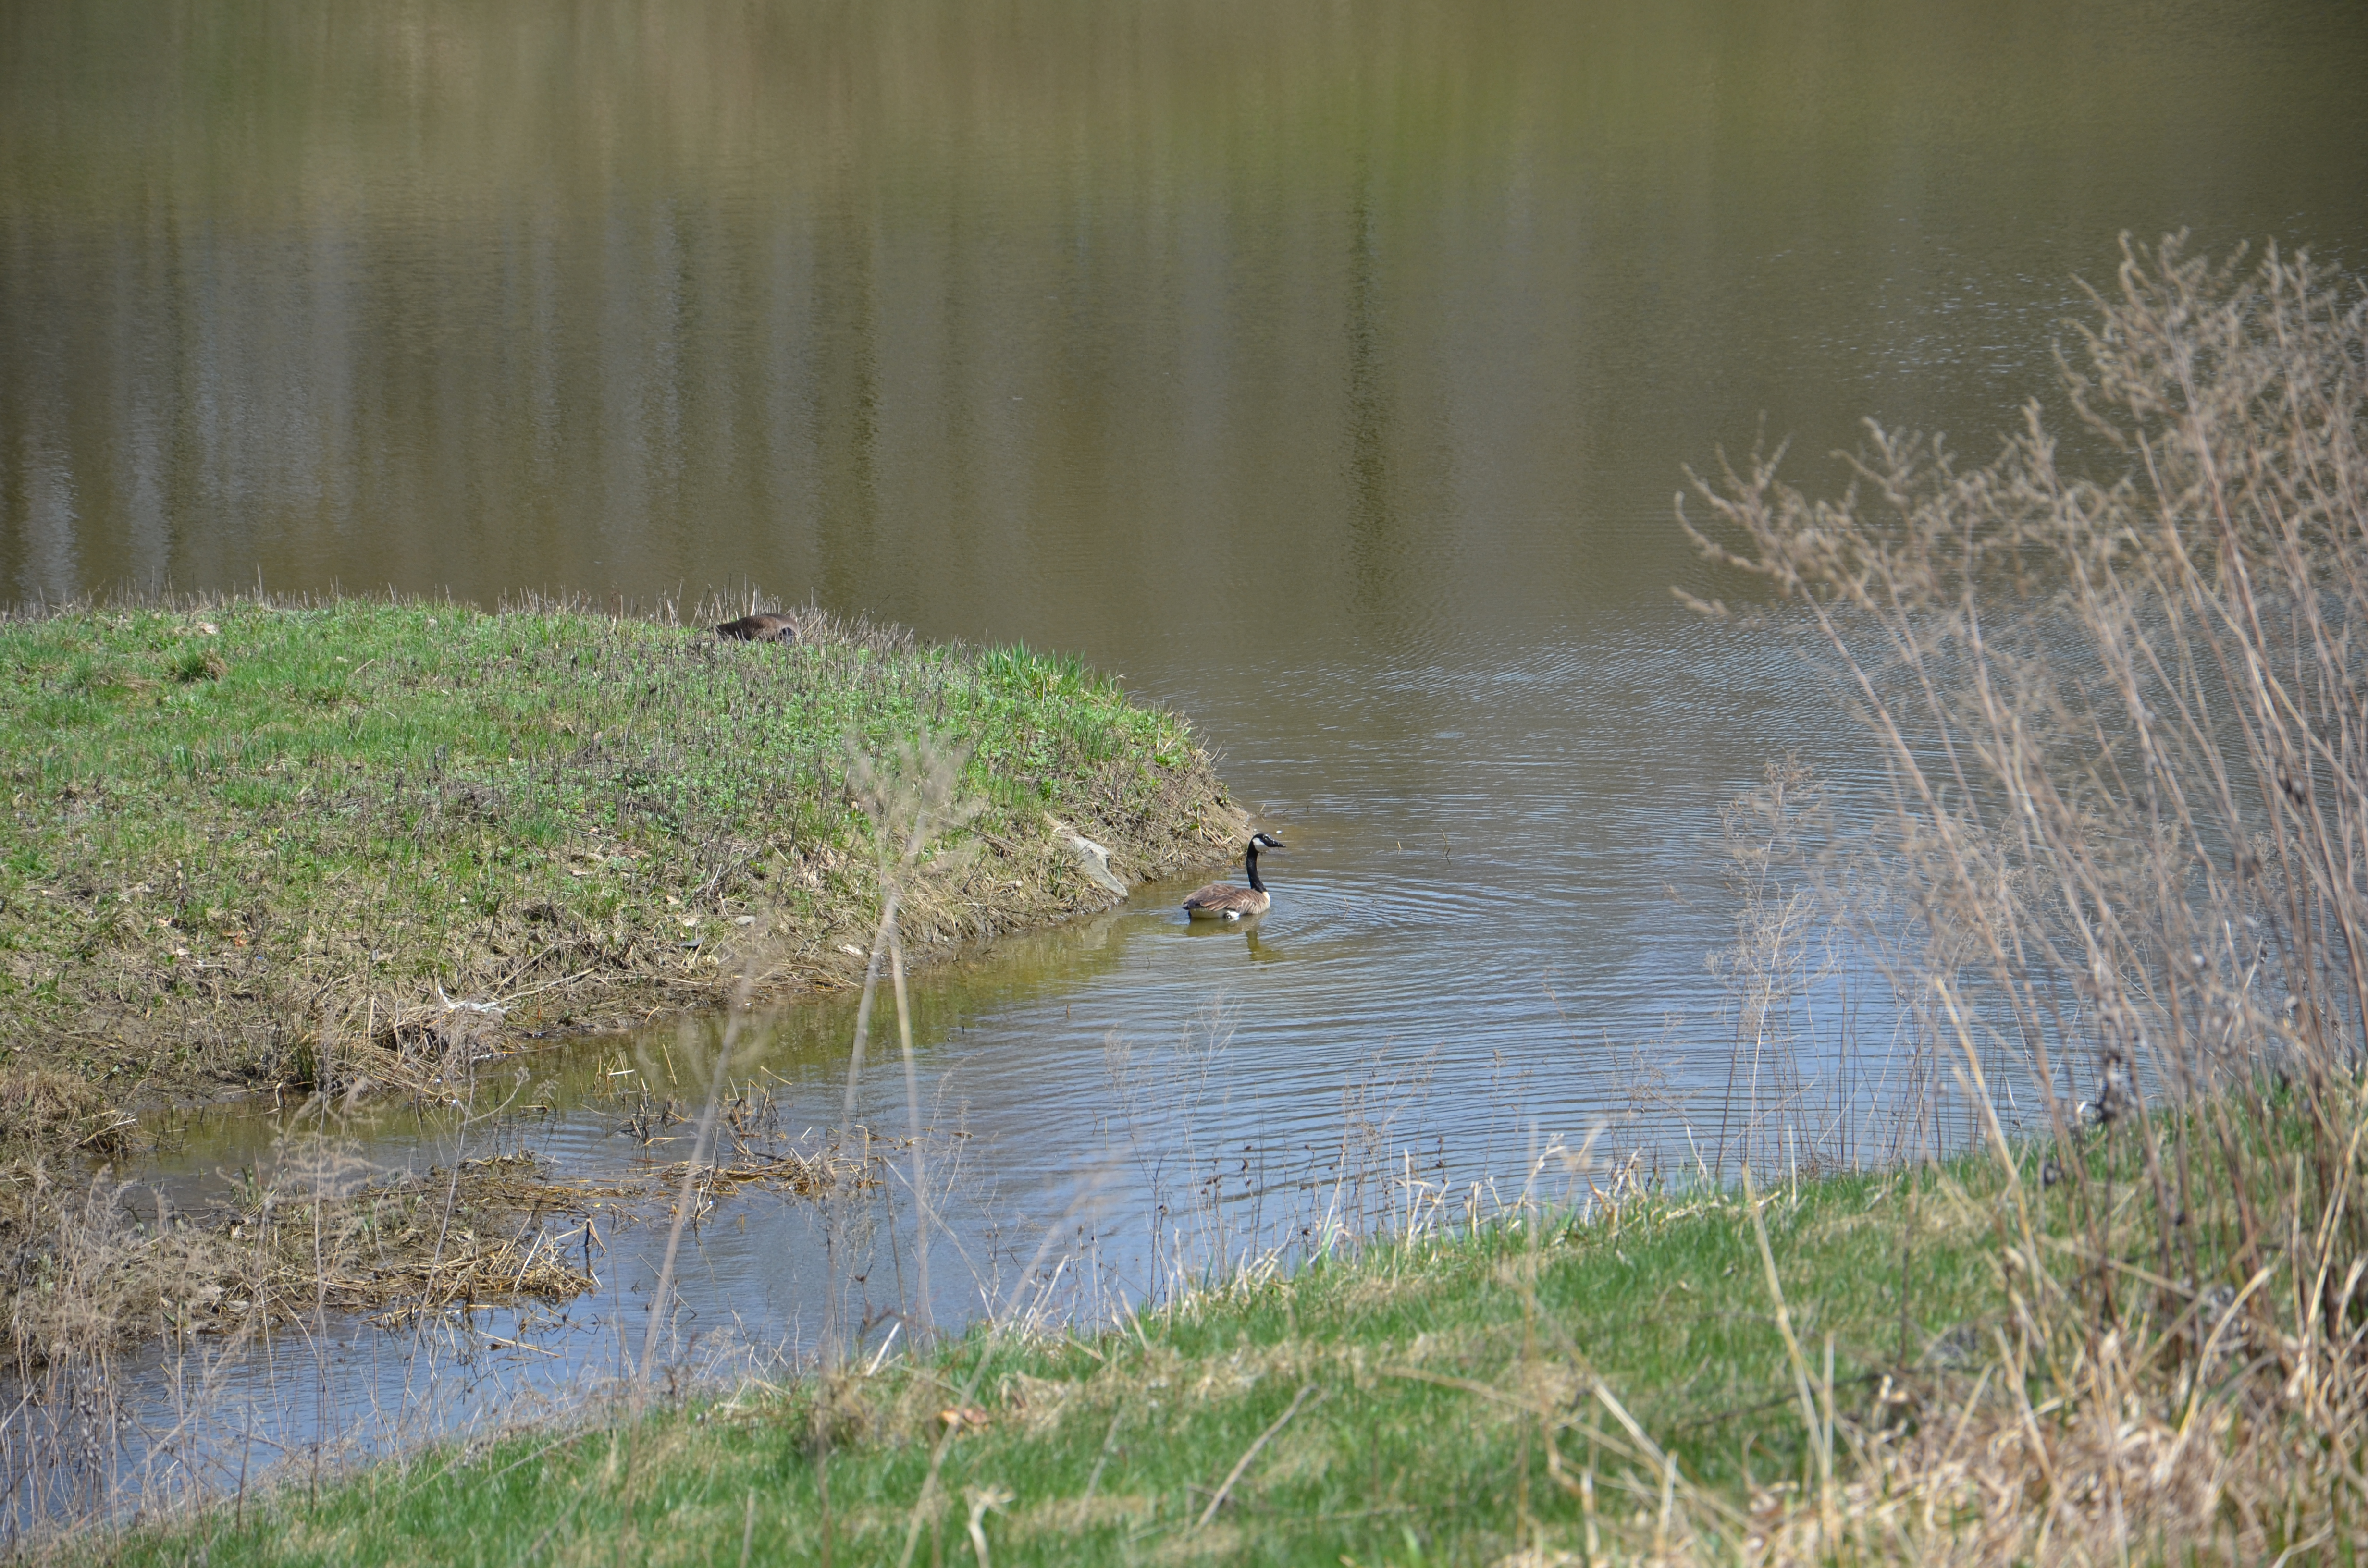 Canada Goose Nesting at Sedimentation Pond 7